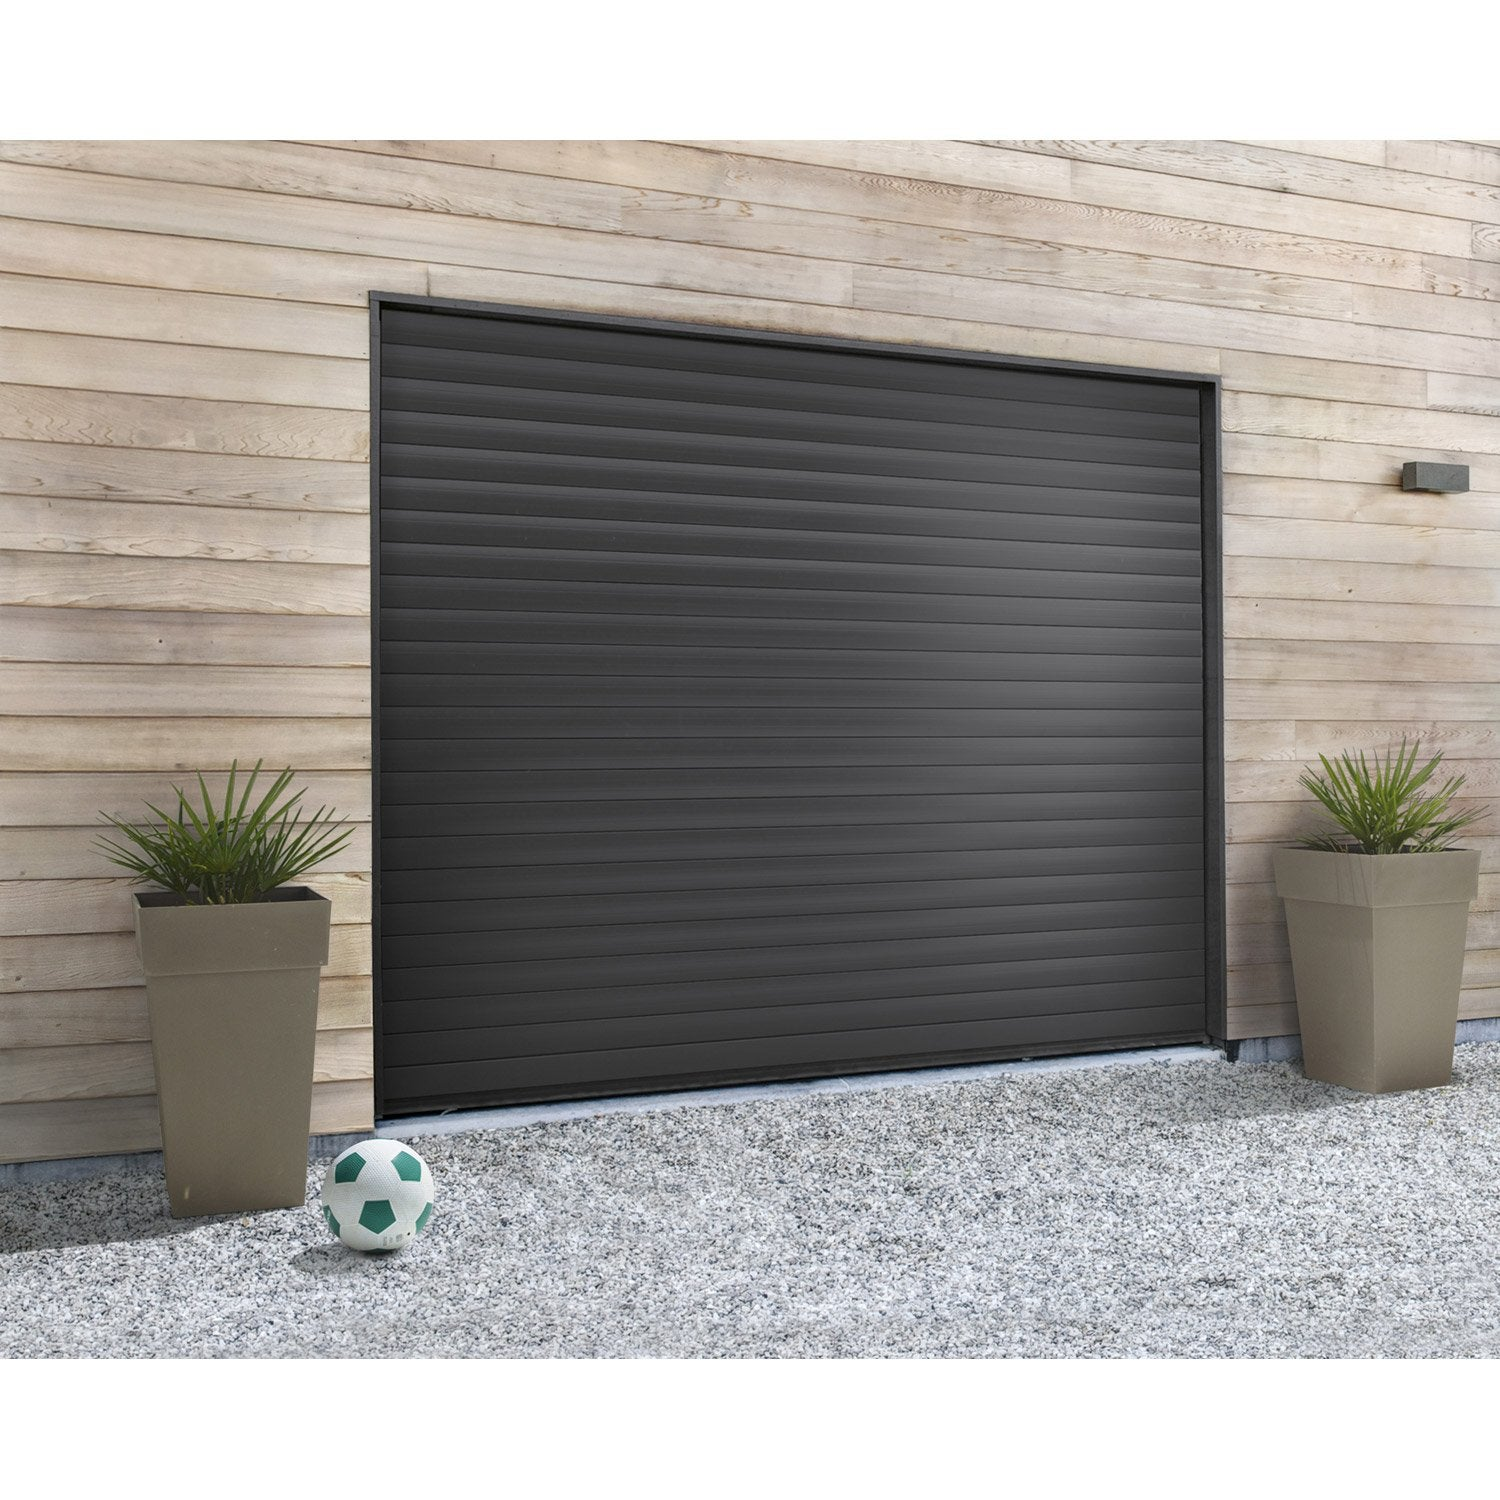 Porte de garage enroulement rollmatic hormann x l - Garage bois leroy merlin ...